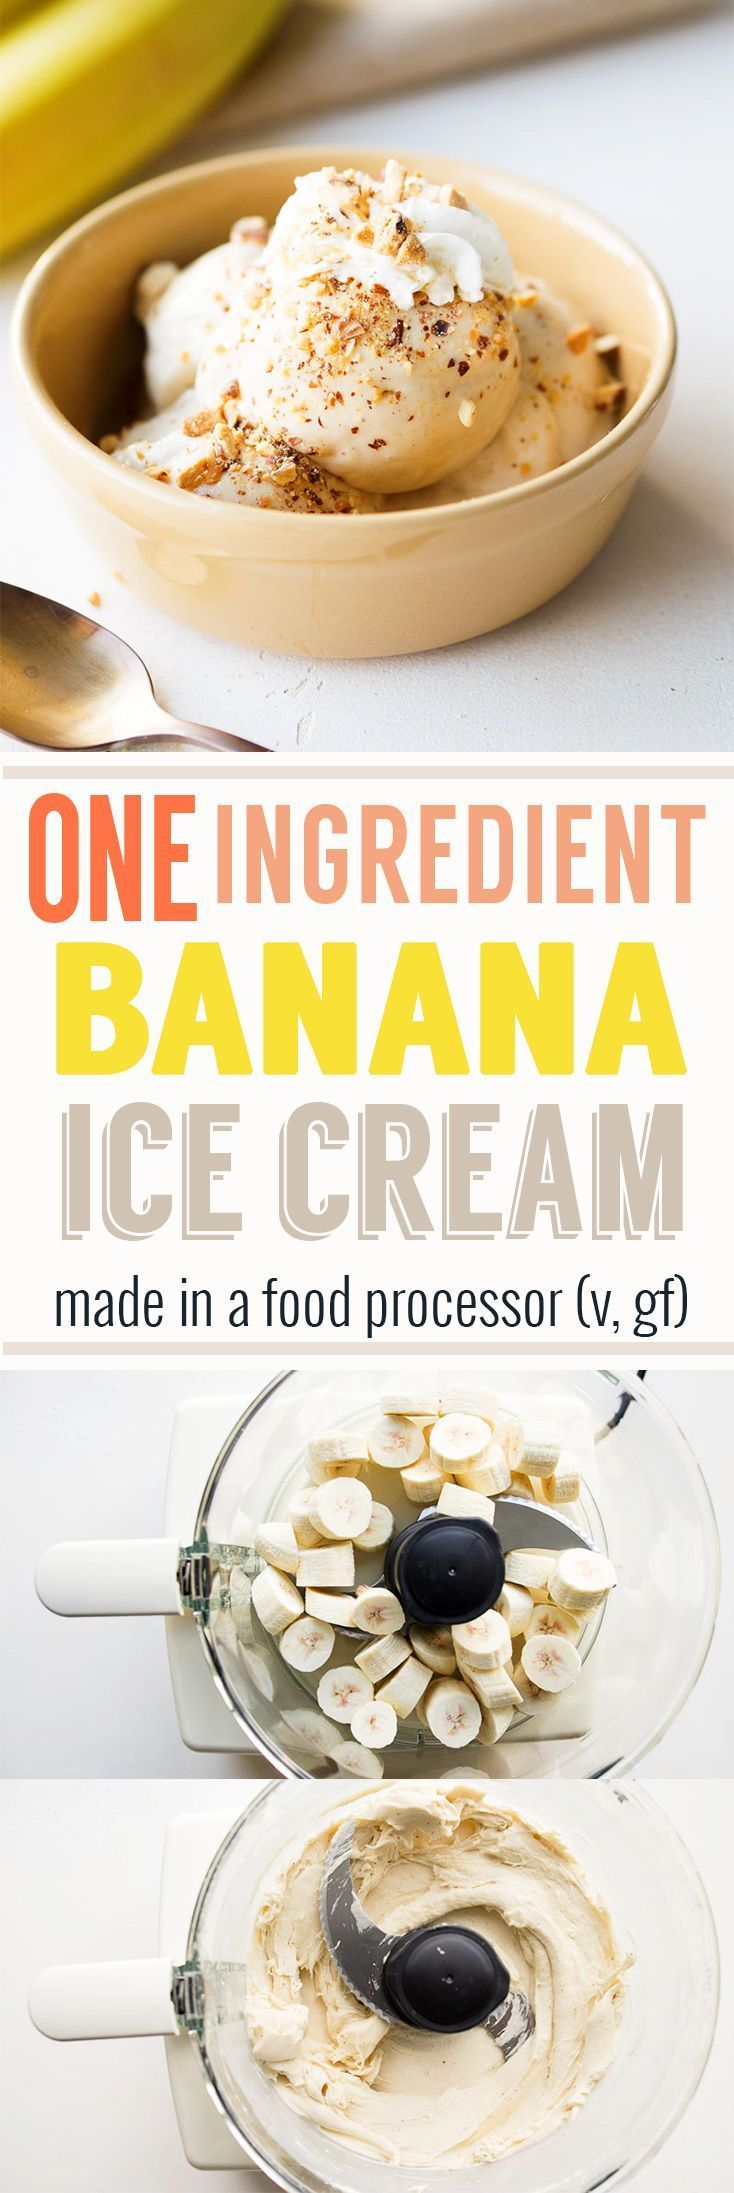 Easy Healthy Banana Ice Cream (vegan, gf). One ingredient only. No machine required. Make this homemade ice cream in a food processor. Recipe from www.theworktop.com. Vegan | Gluten Free | Healthy Dessert | Clean Eating Dessert | Frozen Fruit Recipe | #bananaicecream #homemadeicecream #veganicecream